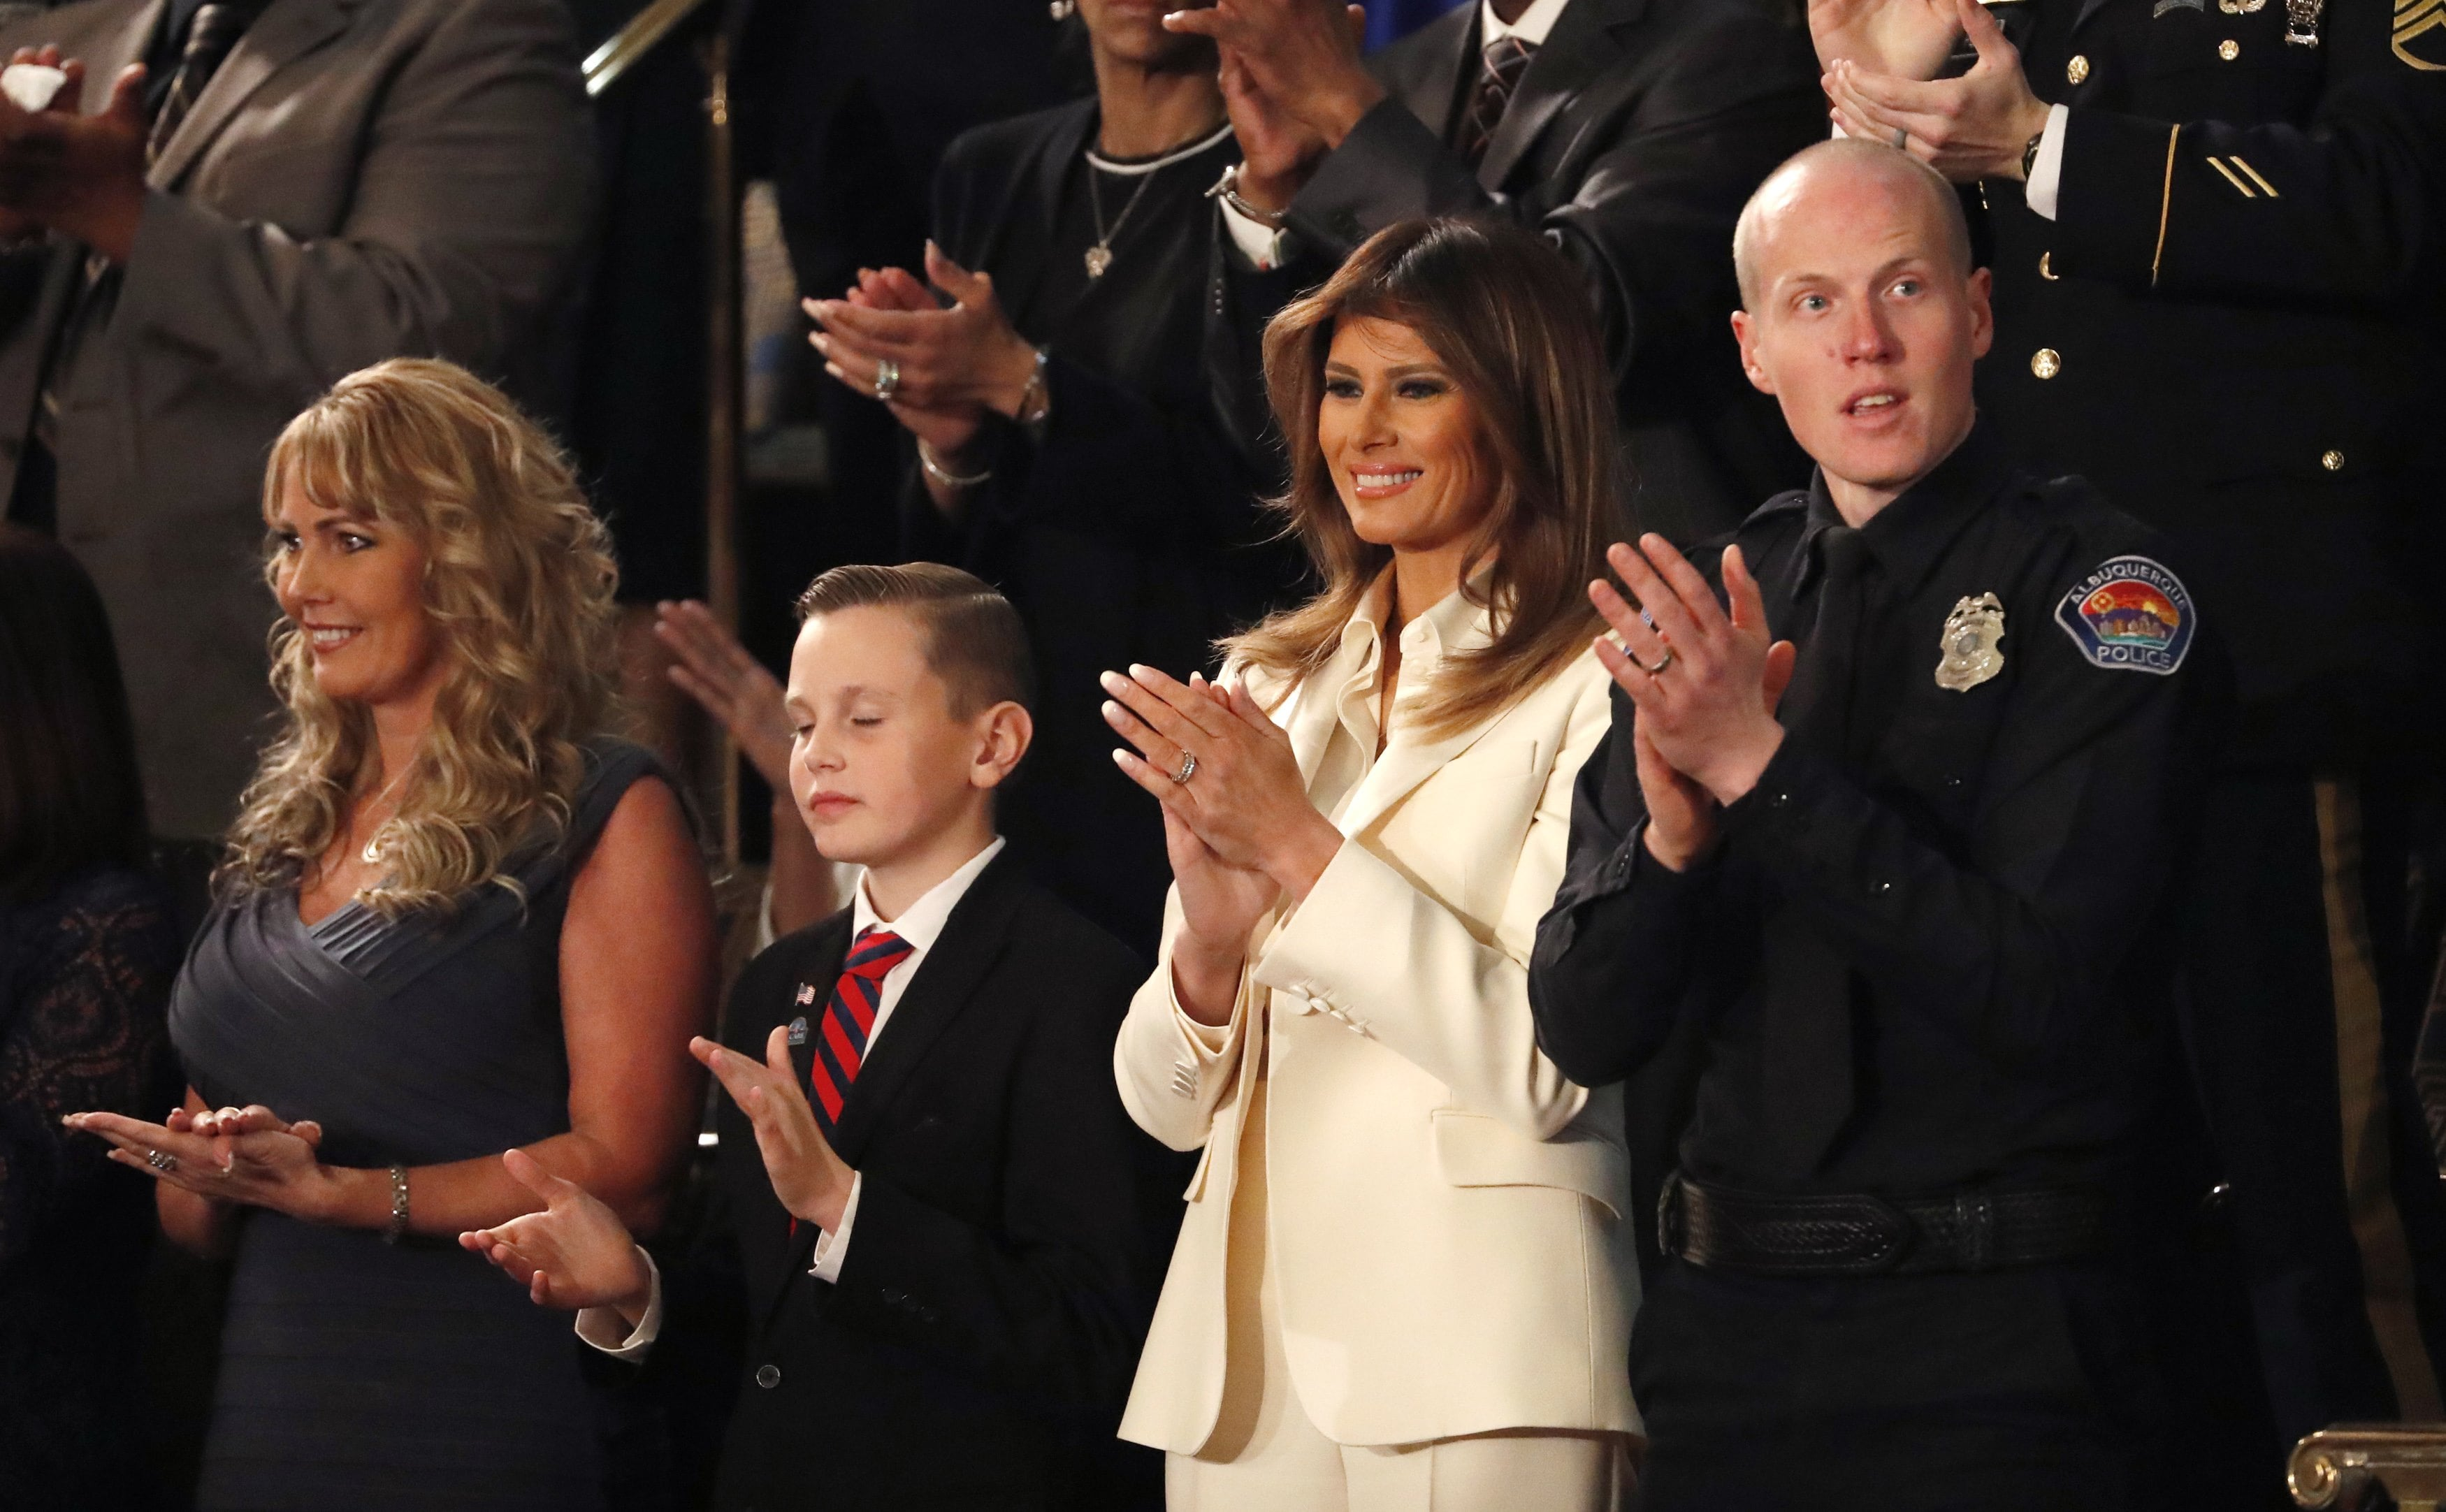 First lady Melania Trump and guests watch as U.S. President Trump delivers his State of the Union address in Washington